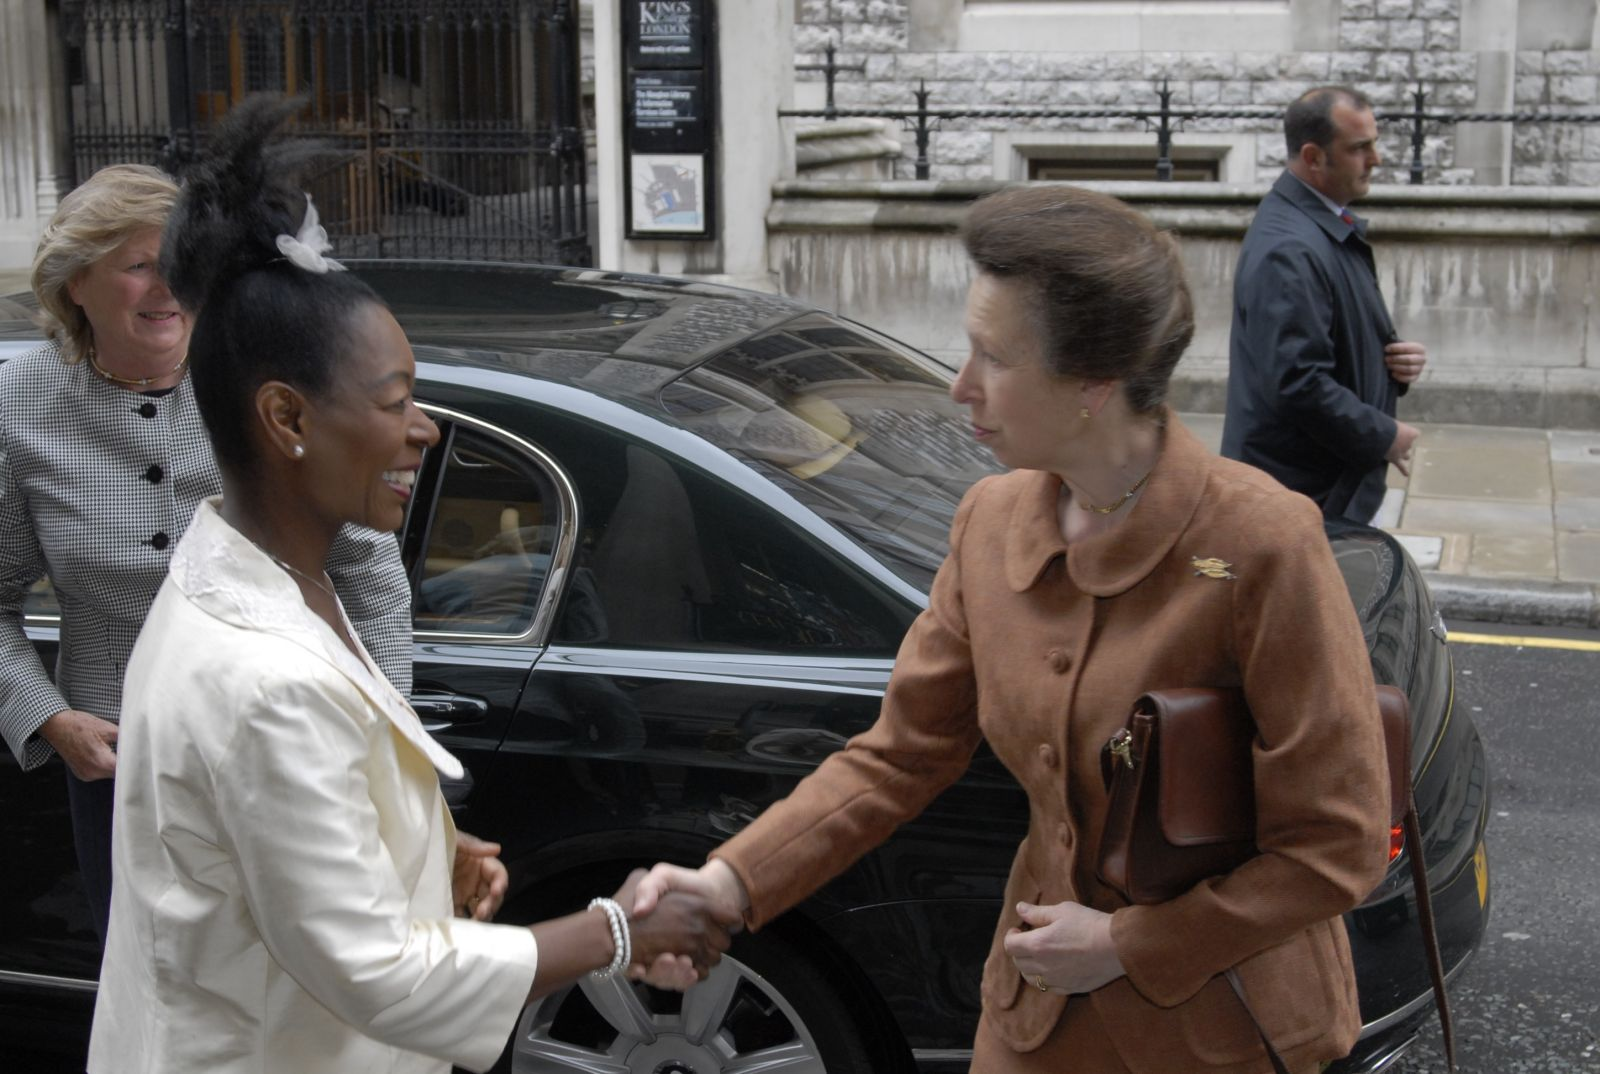 H.R. H The Princess Royal and Baroness LR Floella Benjamin